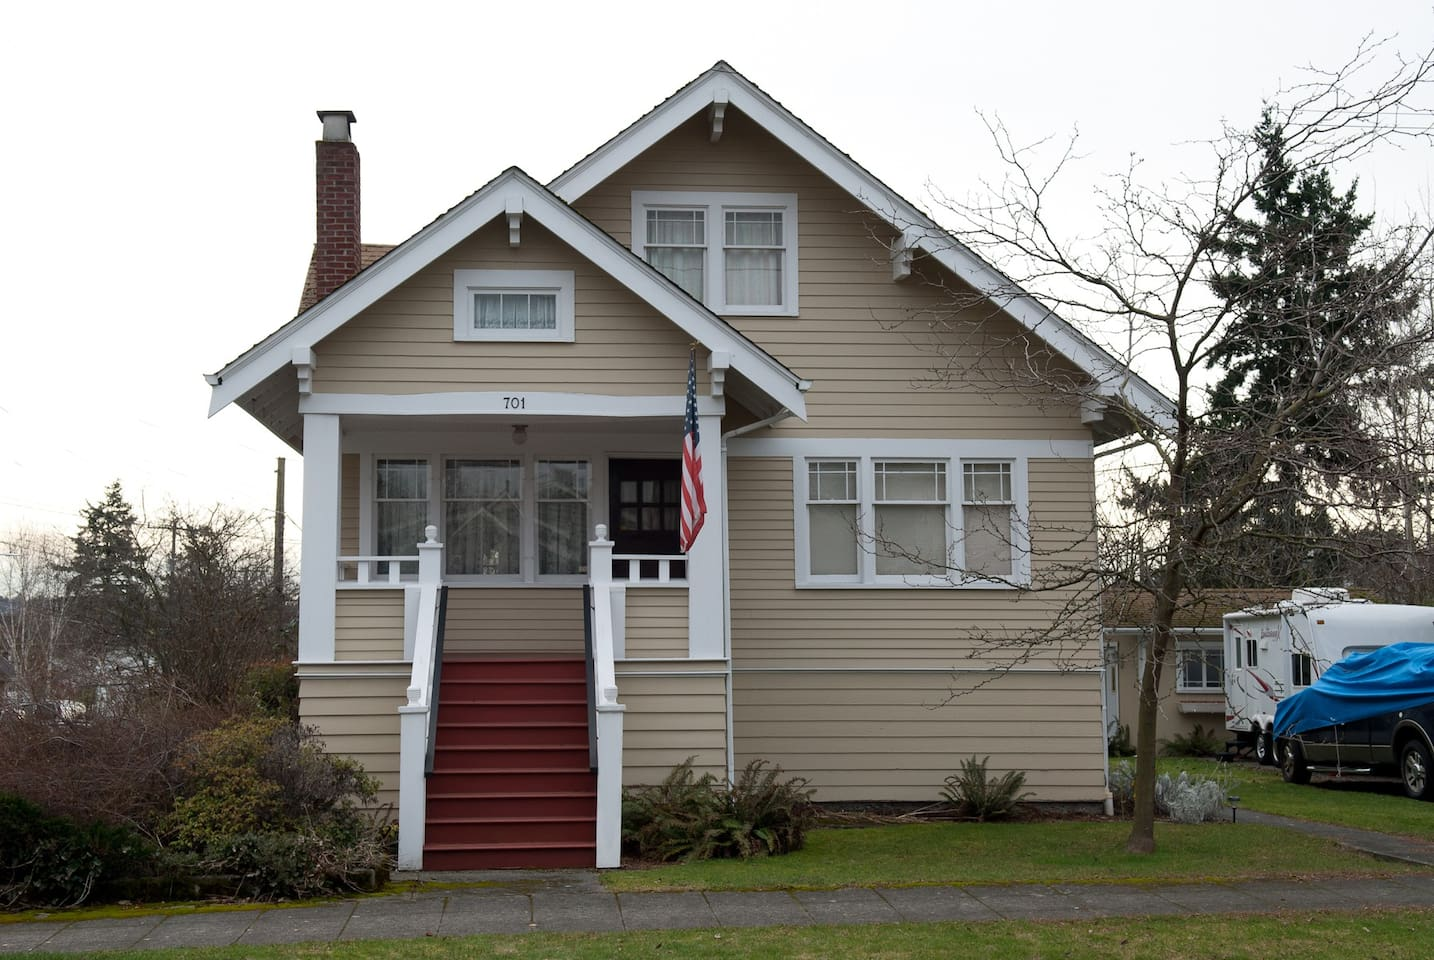 Craftsman style home built 1918